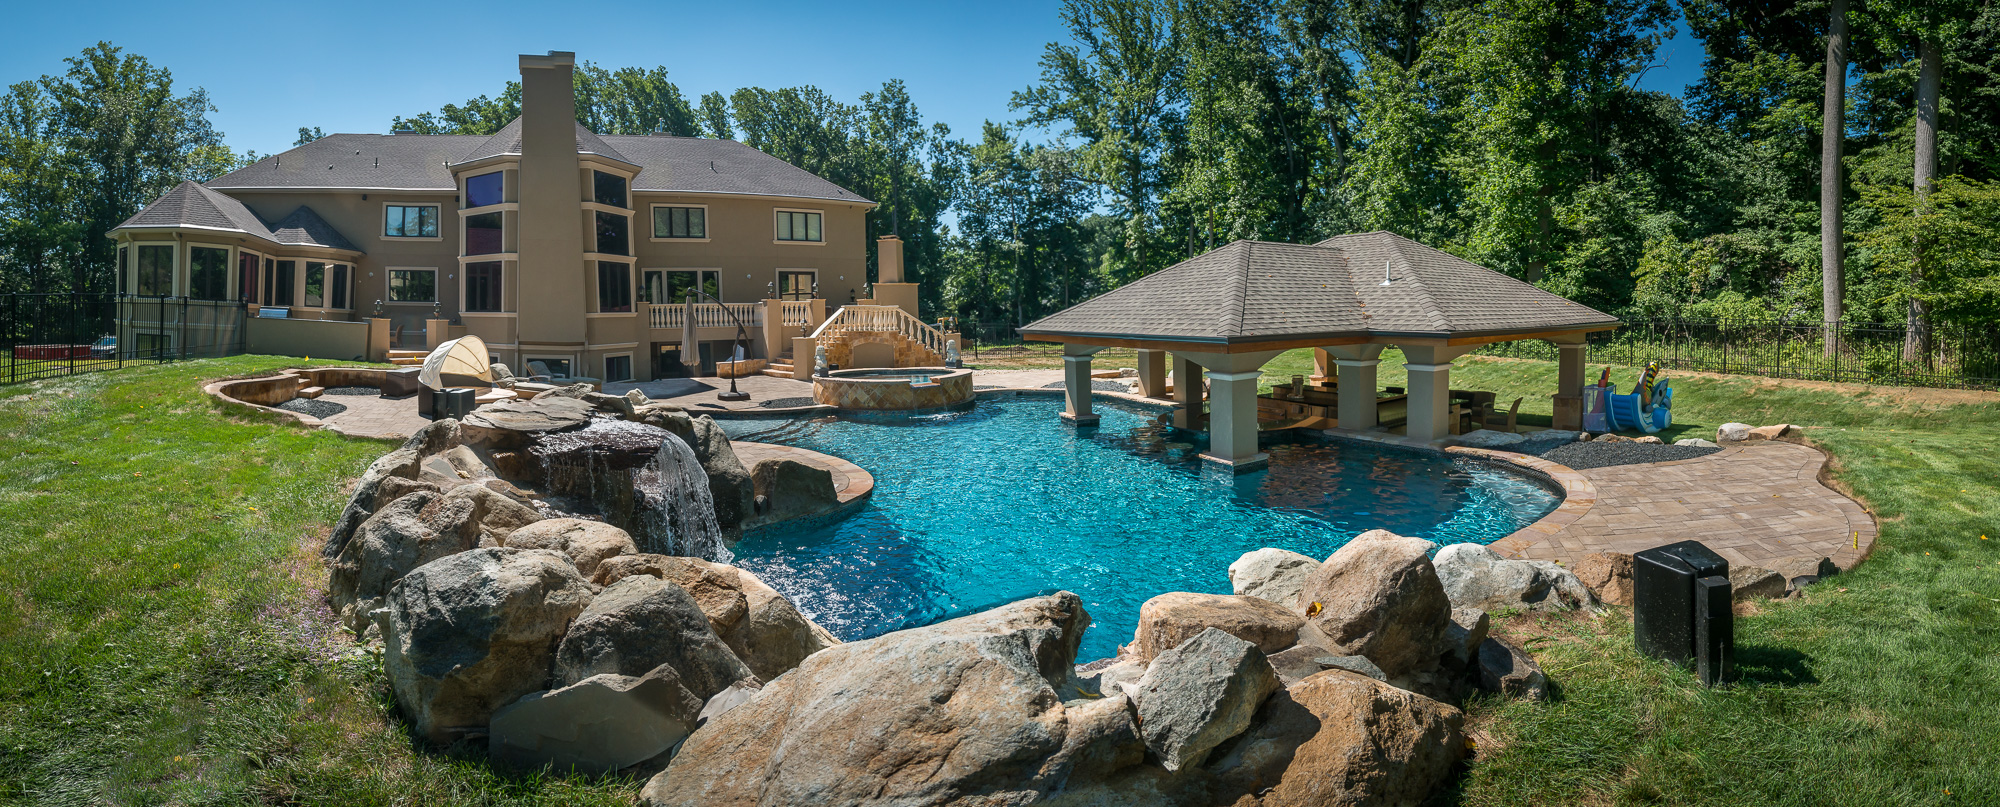 Home; Inground Pools Holmdel Pools By Design New Jersey 15